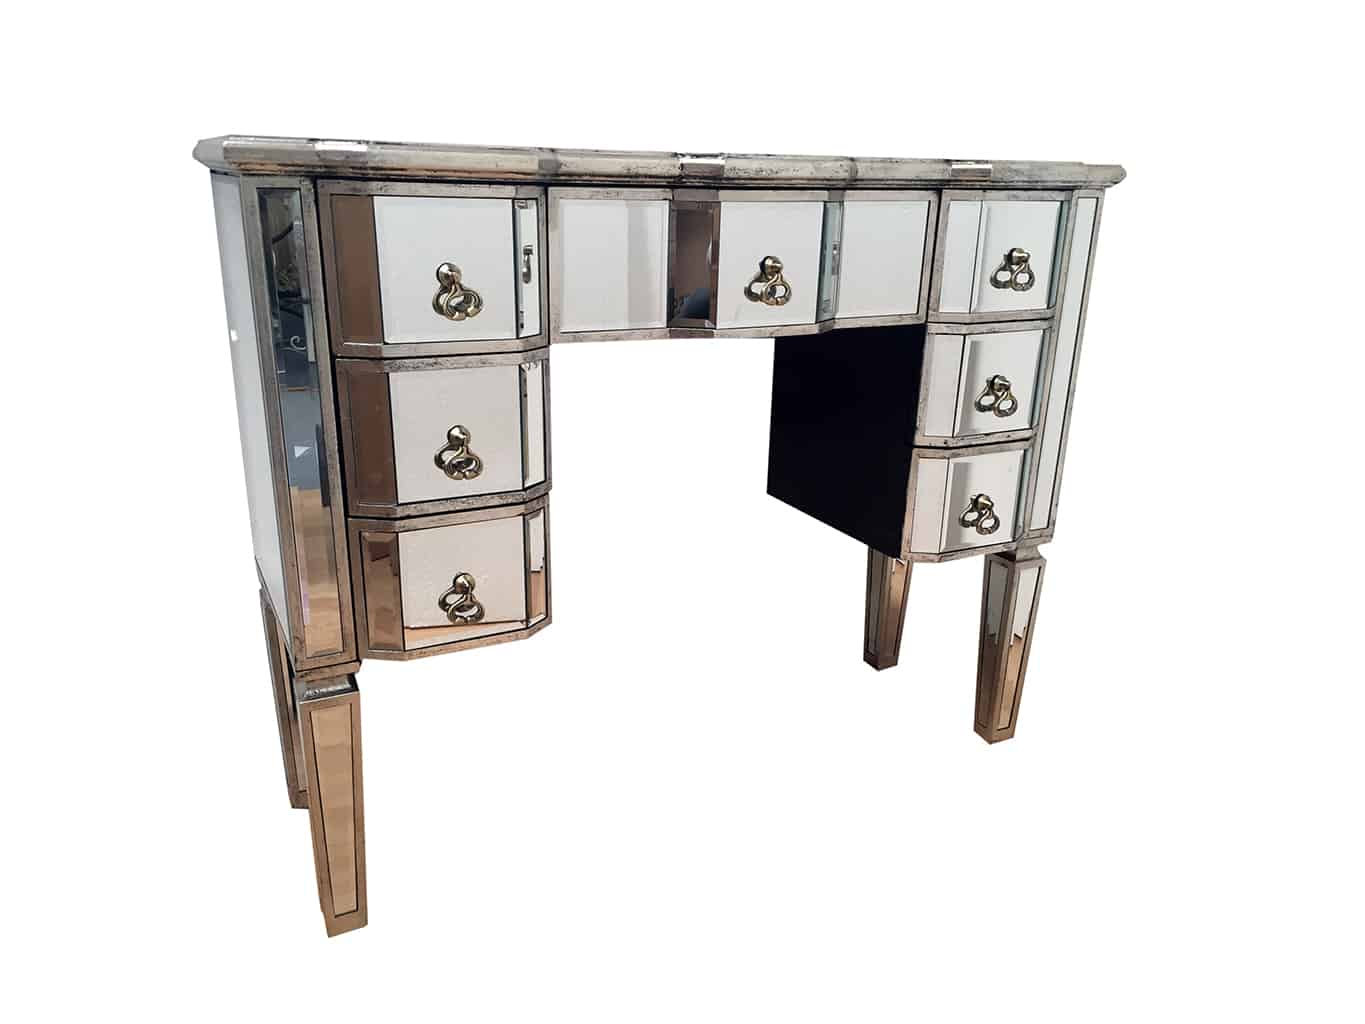 Kneehole Mirrored Dressing Table with 7 Drawers, vintage silver wood edging, all mirrored panels are bevelled, toughened mirrored glass, brass drop handles.